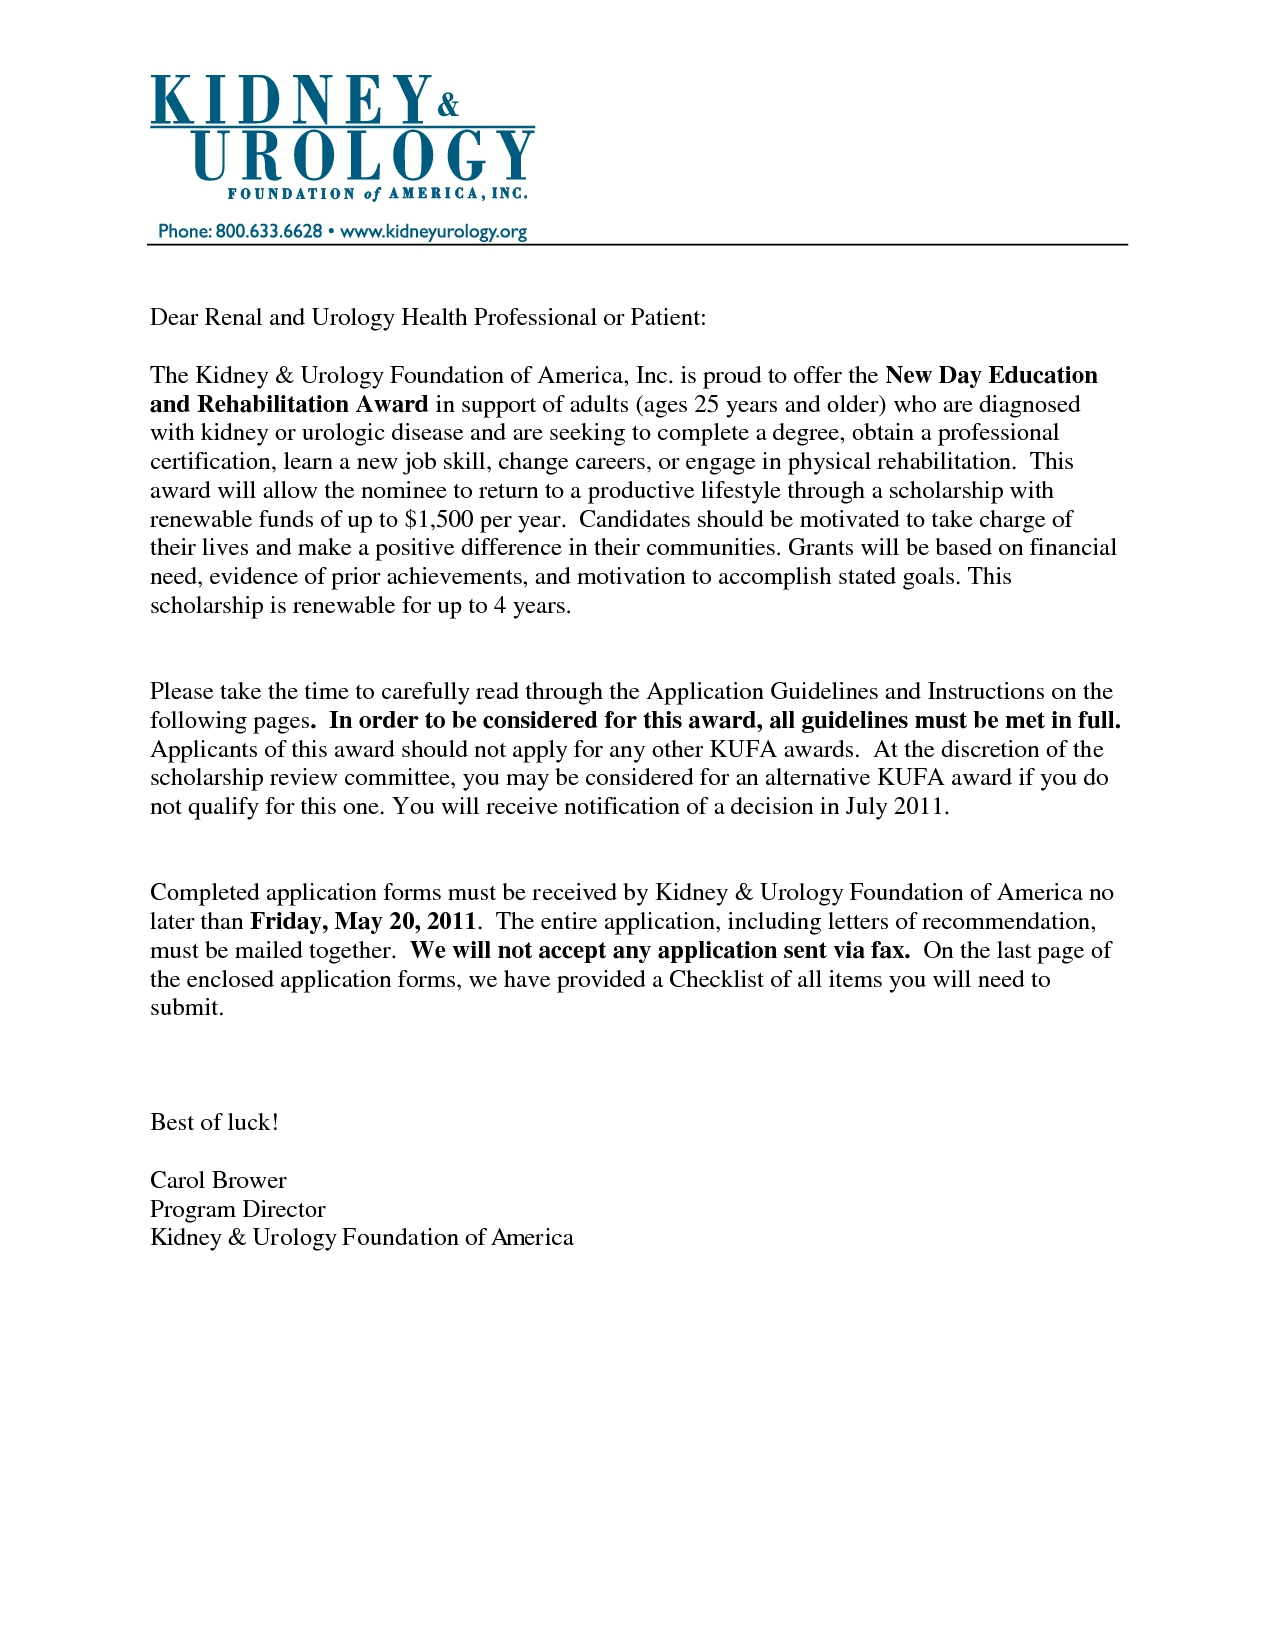 Nursing School Recommendation Letter Template - Juzdeco Example A Good Re Mendation Letter